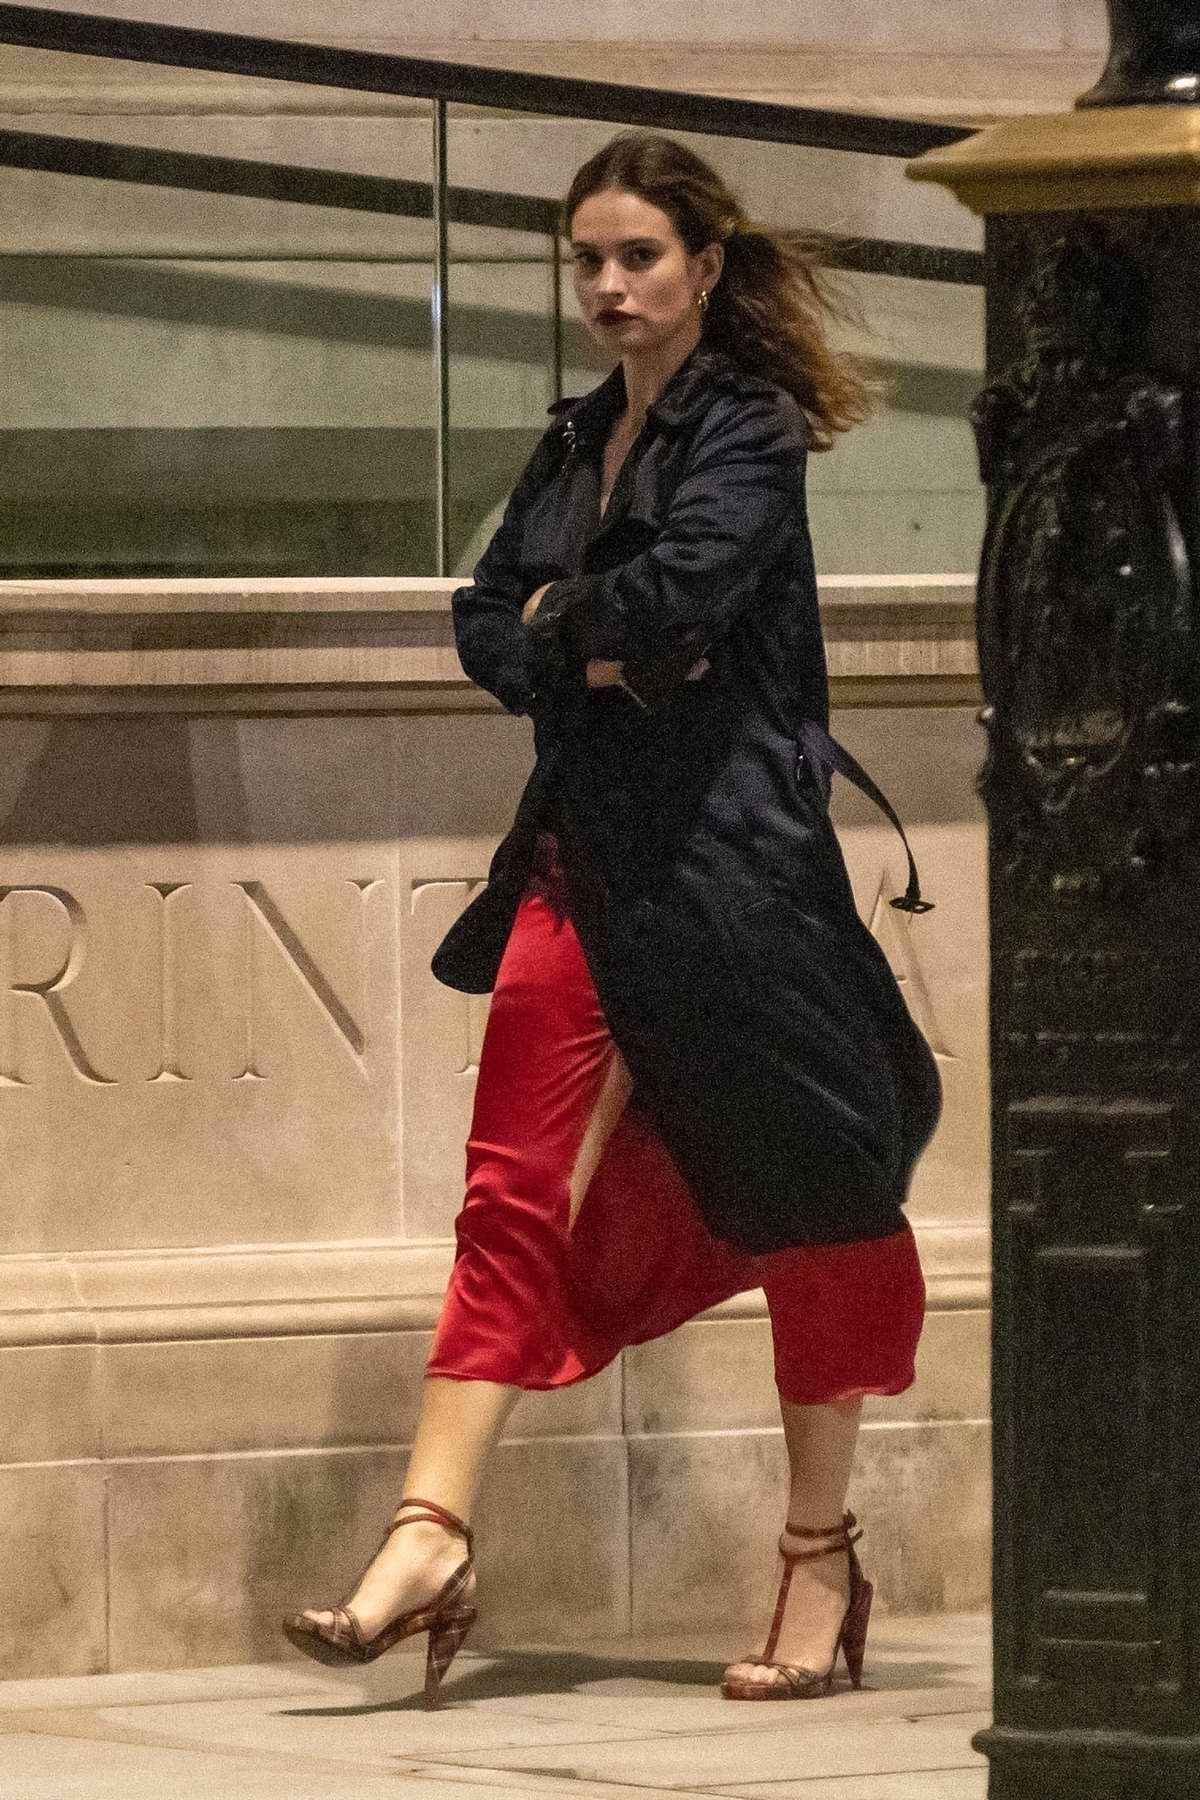 Lily James stuns in a red dress during a night out at Mark's Club in London, UK